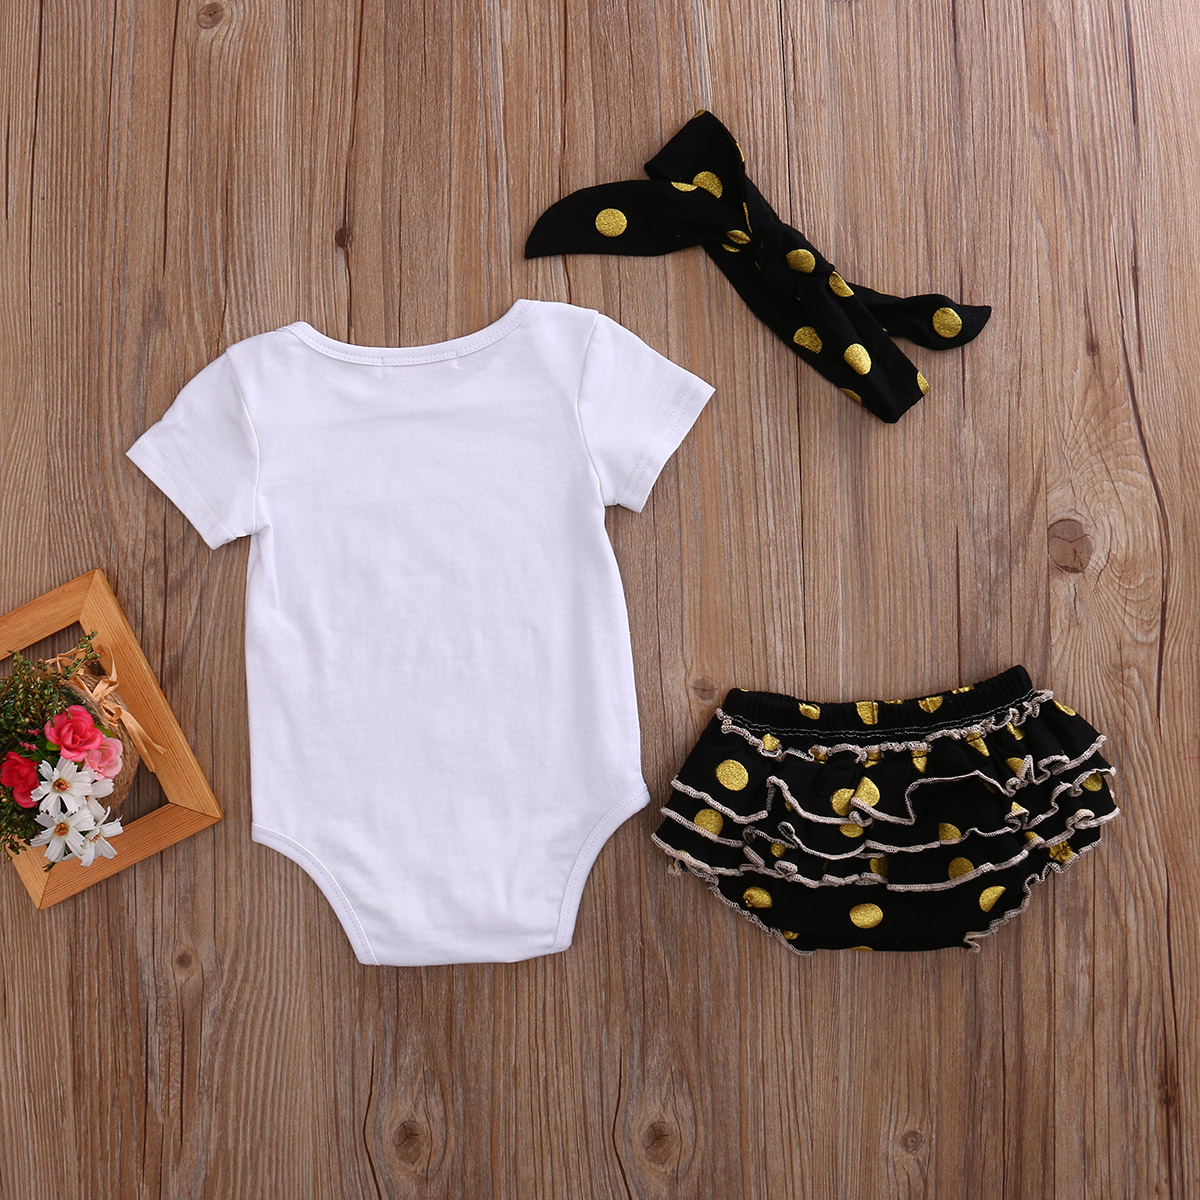 Pudcoco 3pcs Newborn Baby Girl Clothes Summer Short Sleeve O-Neck Bodysuit Dot Ruffle Shorts Outfits Set 0-12 Months Helen115